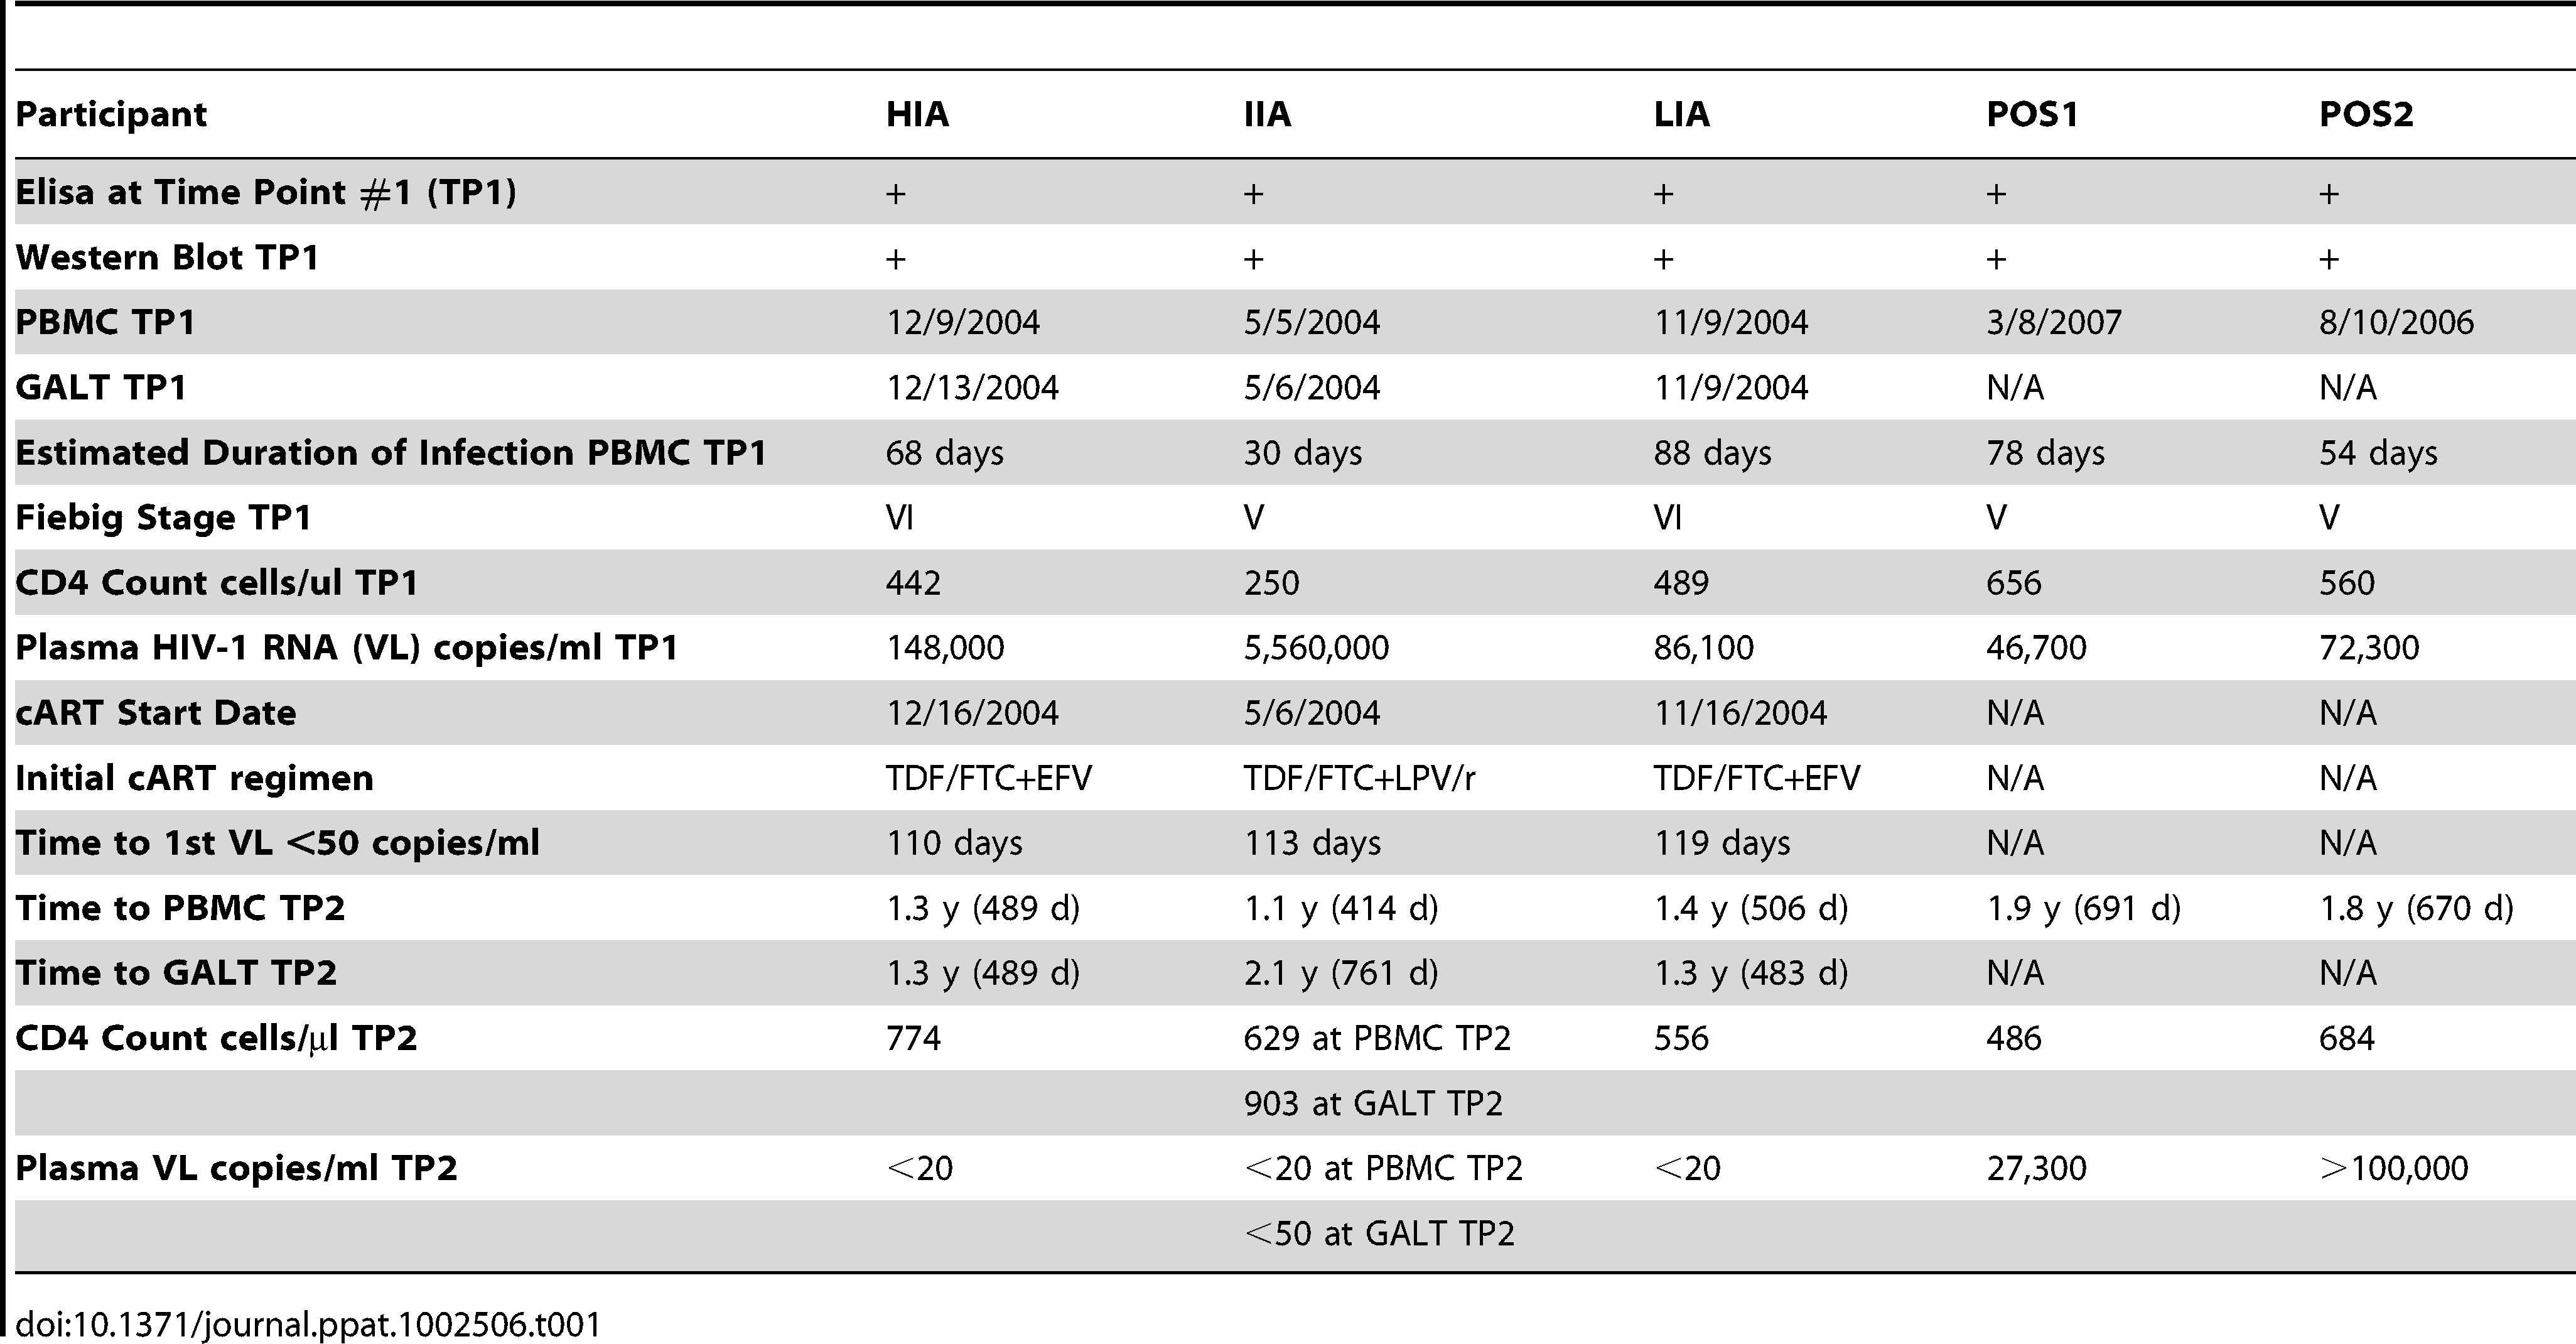 Clinical profile and ARV treatment history for study participants and positive controls.